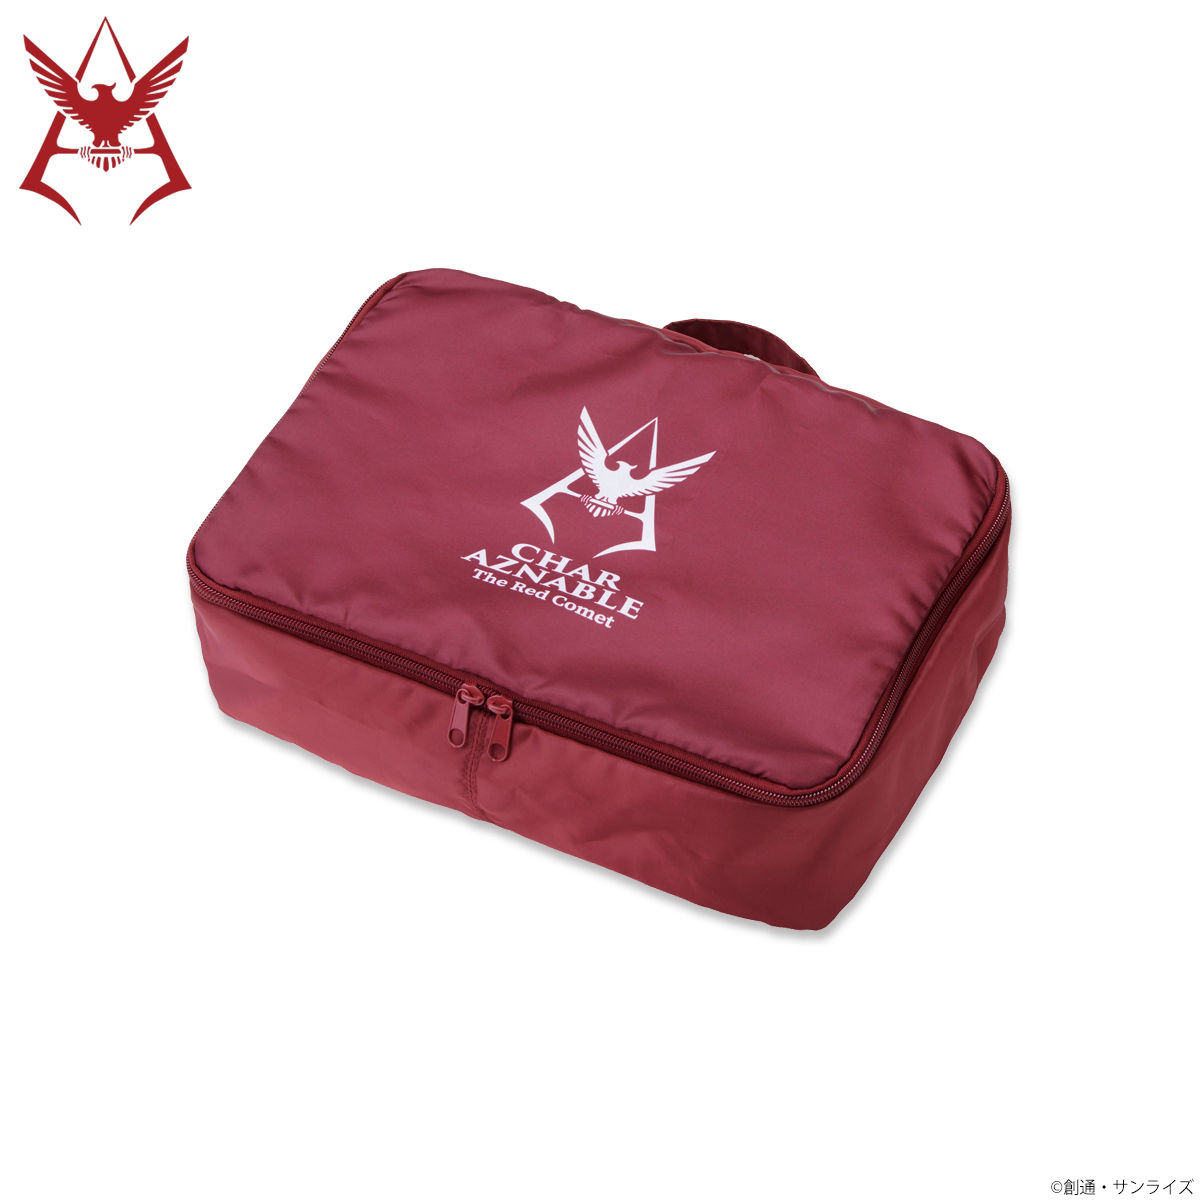 Mobile Suit Gundam Travel Packing Cubes